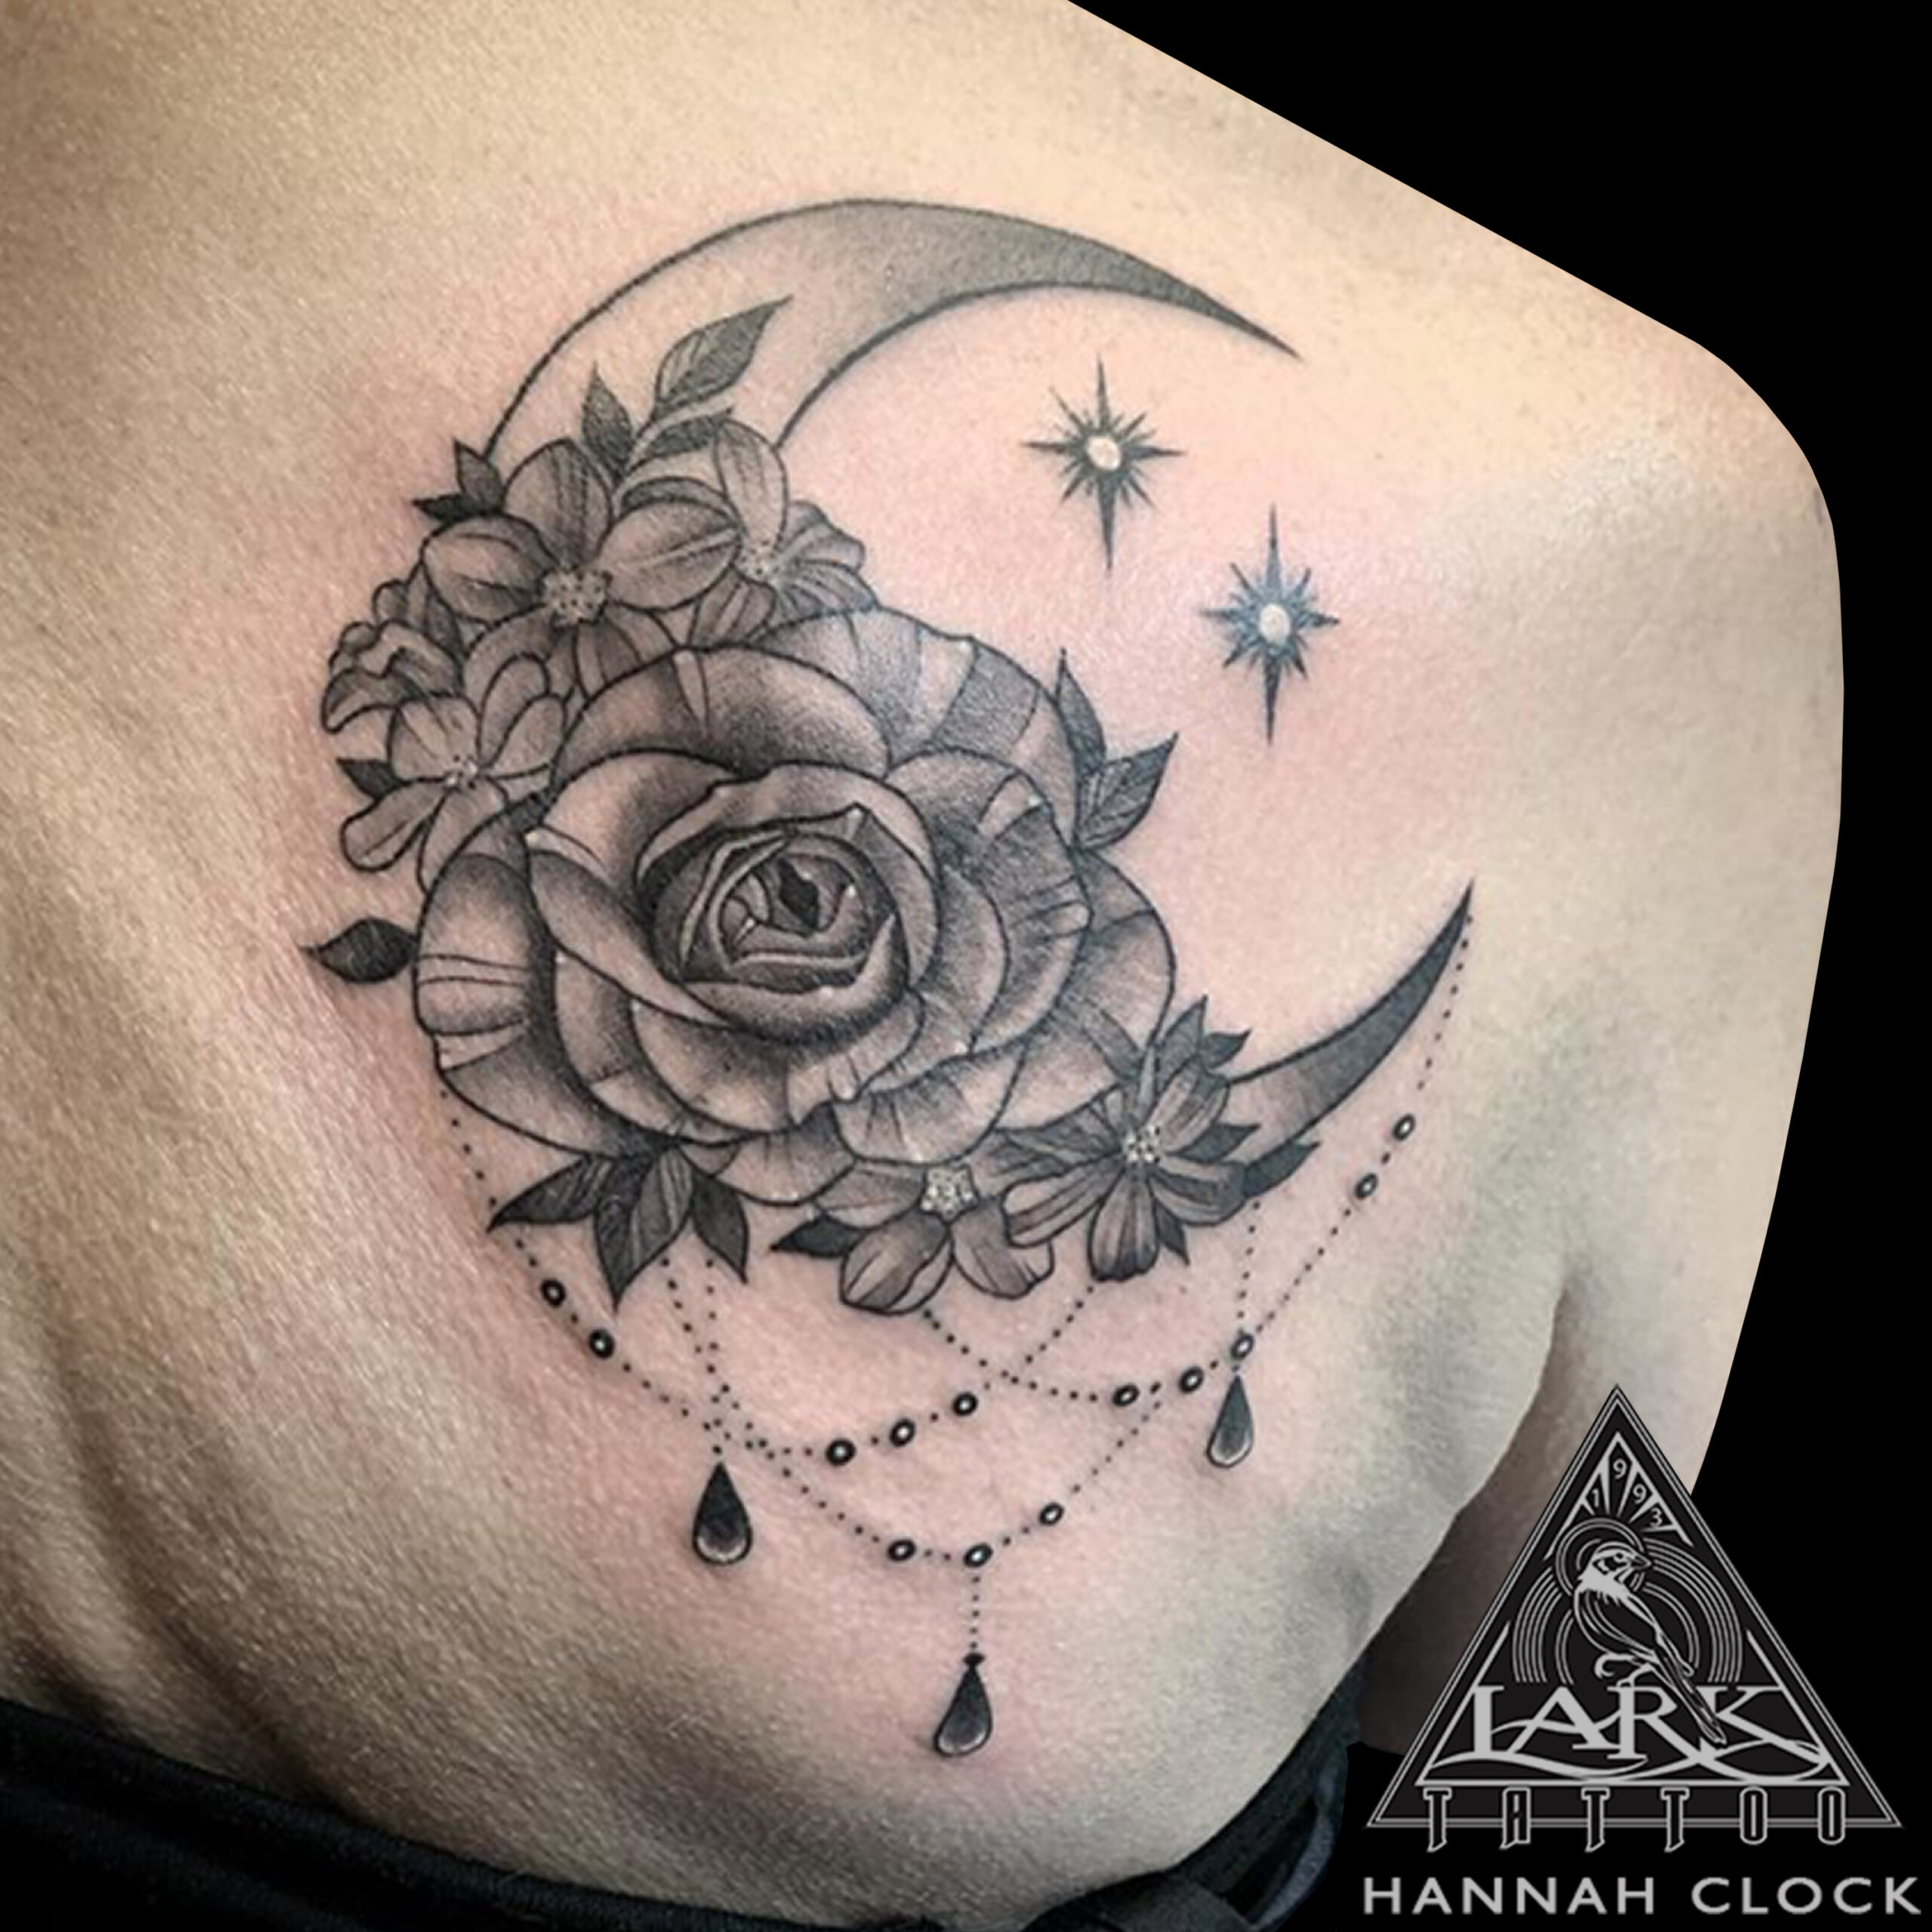 LarkTattoo, HannahClock, HannahClockTattoo, HannahClockLarkTattoo, FemaleTattooer, FemaleArtist, LadyTattooer, Tattoo, Tattoos, BlackAndGray , BlackAndGrayTattoo, BlackAndGrey , BlackAndGreyTattoo, BNG, BNGTattoo, BNGInkSociety, Moon, MoonTattoo, Rose, RoseTattoo, ShoulderTattoo, Bejeweled, BejeweledTattoo, Jeweled, JeweledTattoo, Jewels, JewelsTattoo, TattooArtist, Tattoist, Tattooer, LongIslandTattooArtist, LongIslandTattooer, LongIslandTattoo, TattooOfTheDay, Tat, Tats, Tatts, Tatted, Inked, Ink, TattooInk, AmazingInk, AmazingTattoo, BodyArt, LarkTattooWestbury, Westbury, LongIsland, NY, NewYork, USA, Art, Tattedup, InkedUp, LarkTattoos